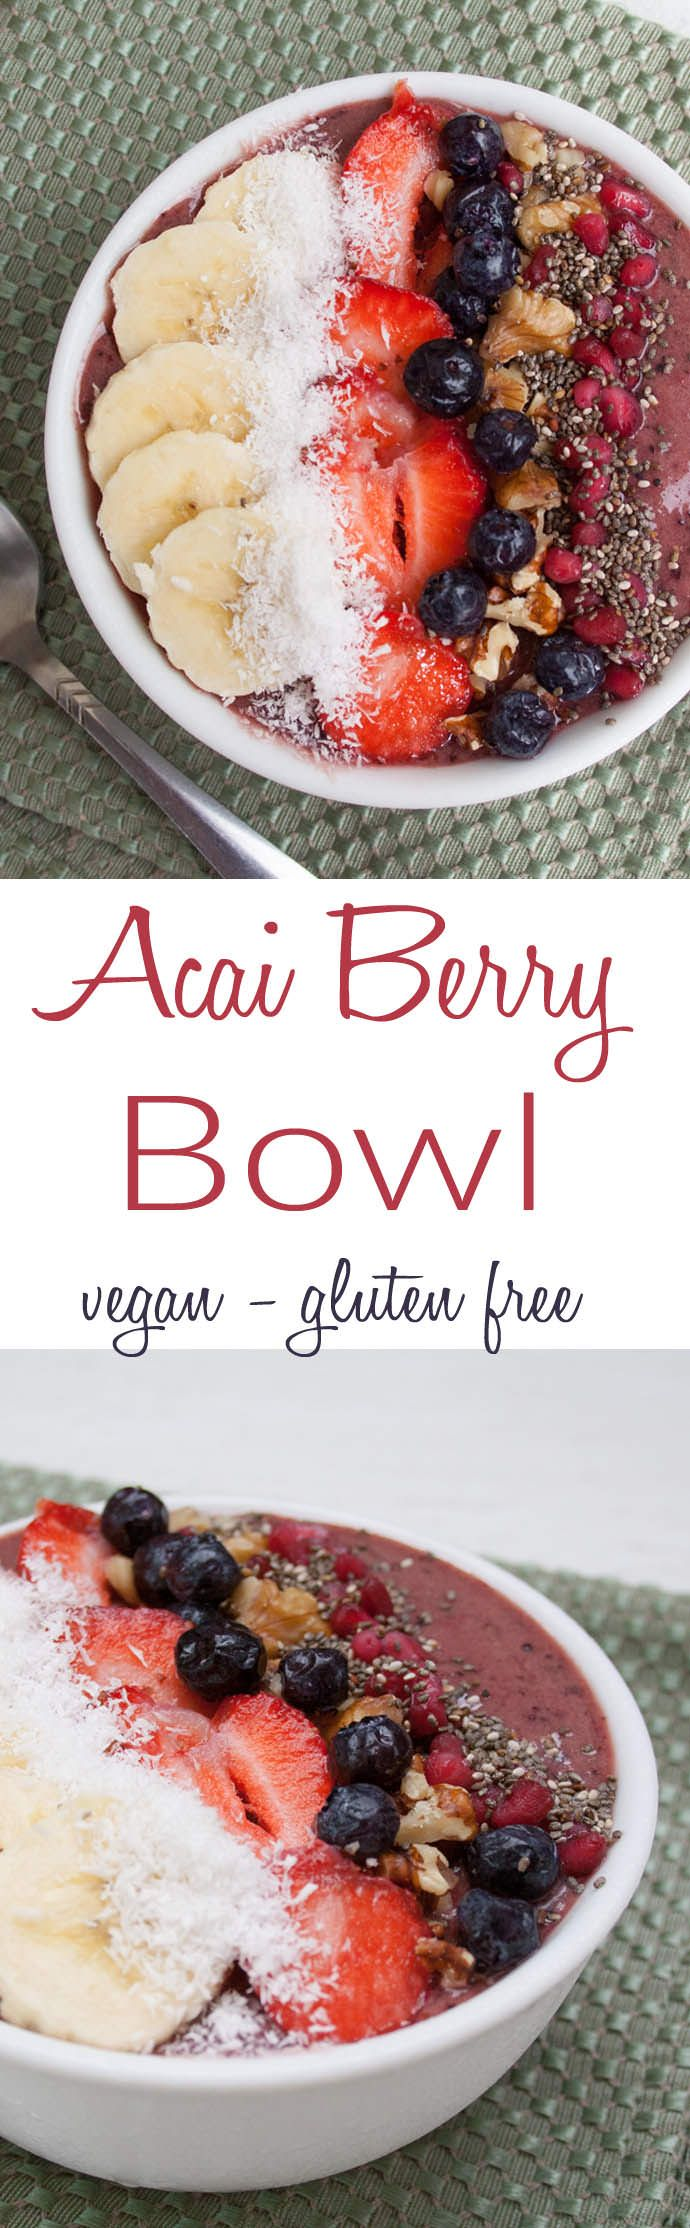 Acai Berry Bowl (vegan, gluten free) - This smoothie bowl makes you feel like you are eating dessert, but it is really healthy! Since it can be made in minutes, it is perfect for weekdays!